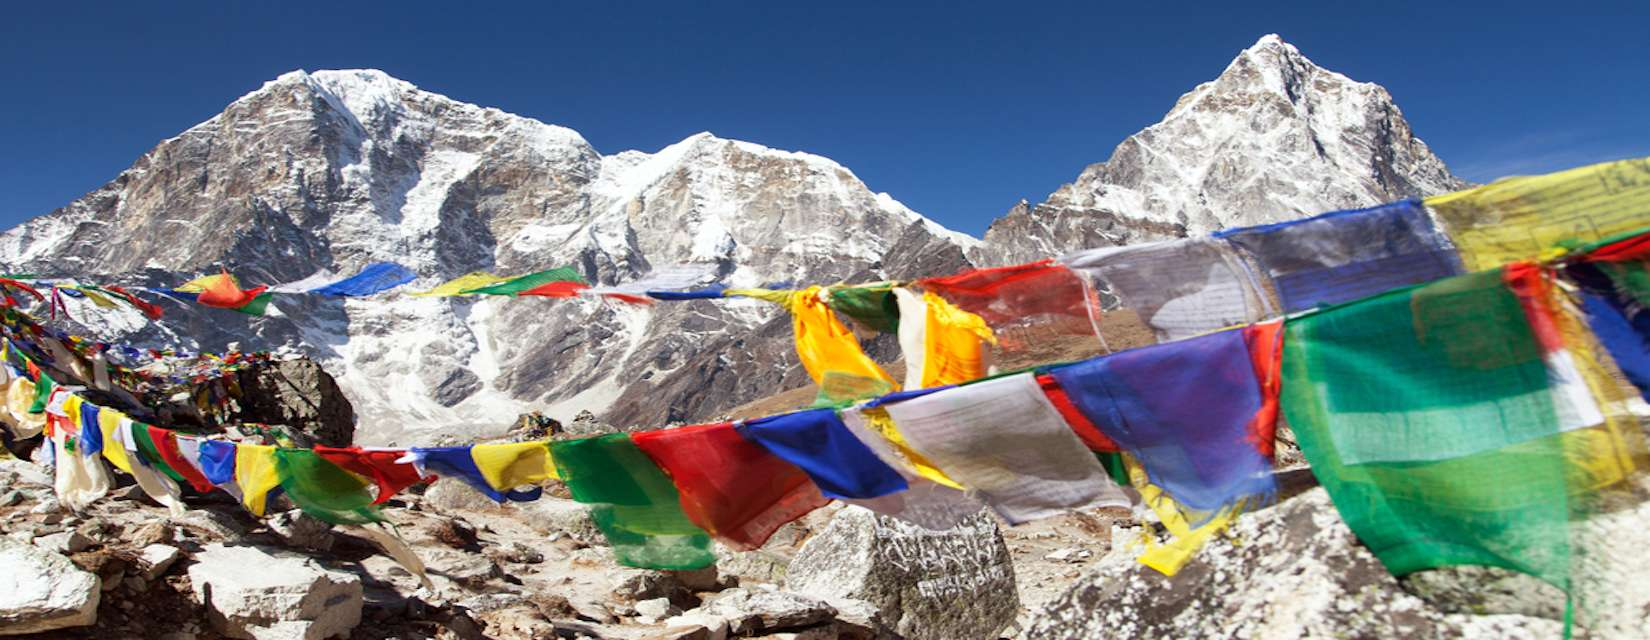 Cheap Everest Base Camp Trek Budget